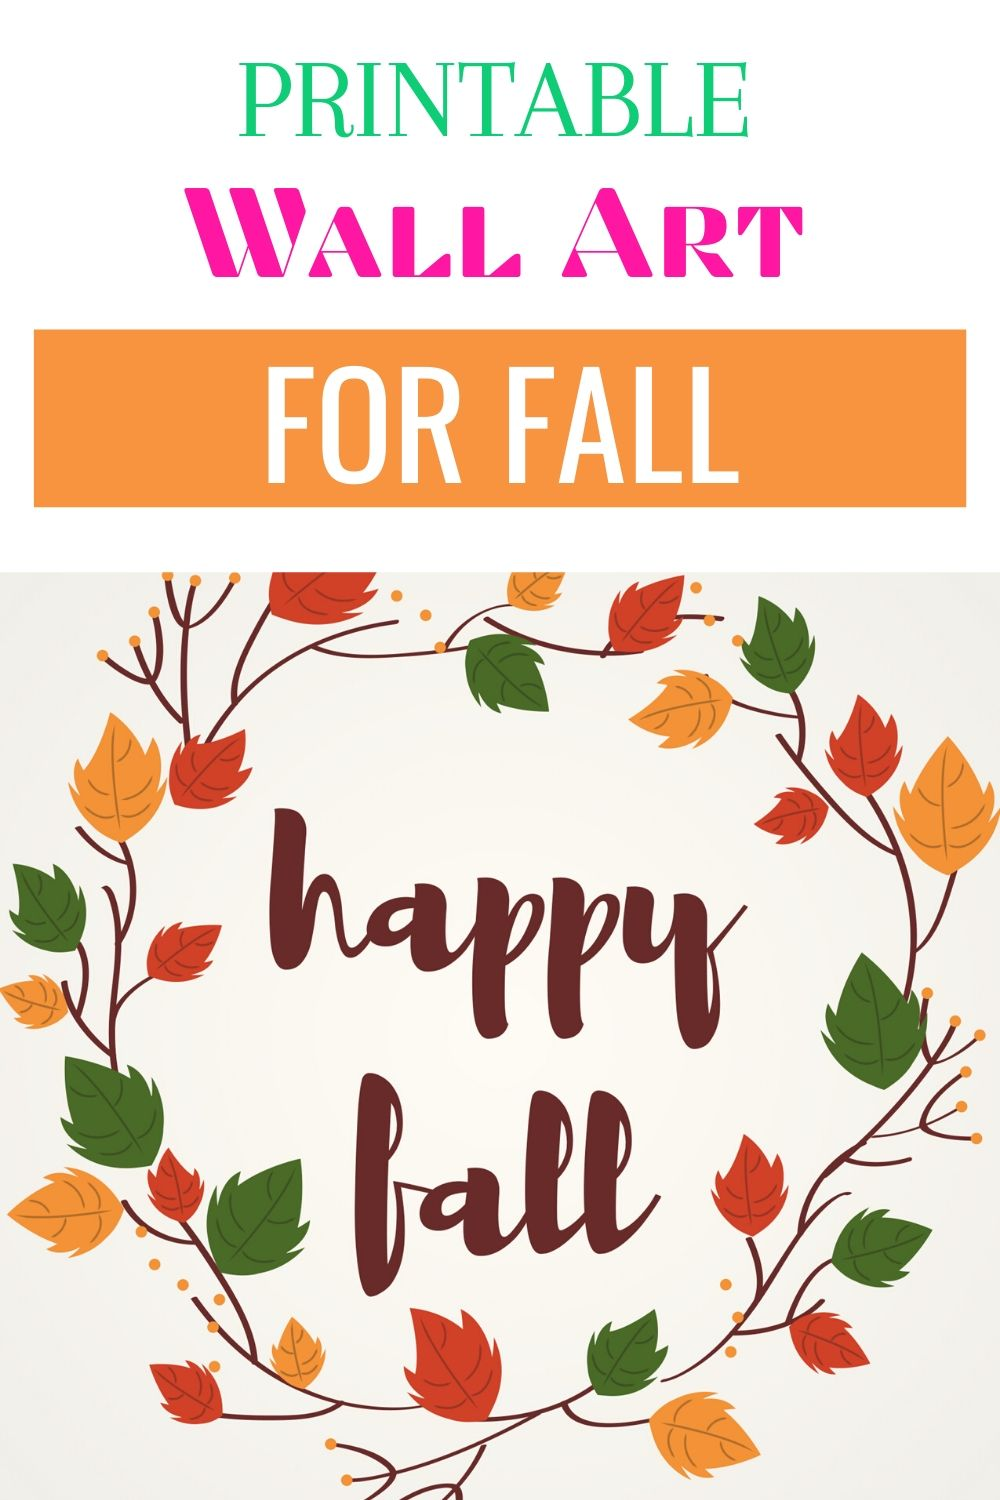 Print these free fall wall art printables to decorate your home or gift to loved ones this holiday season #wallart #fall #printable #freeprintable #freeart via @homebyjenn